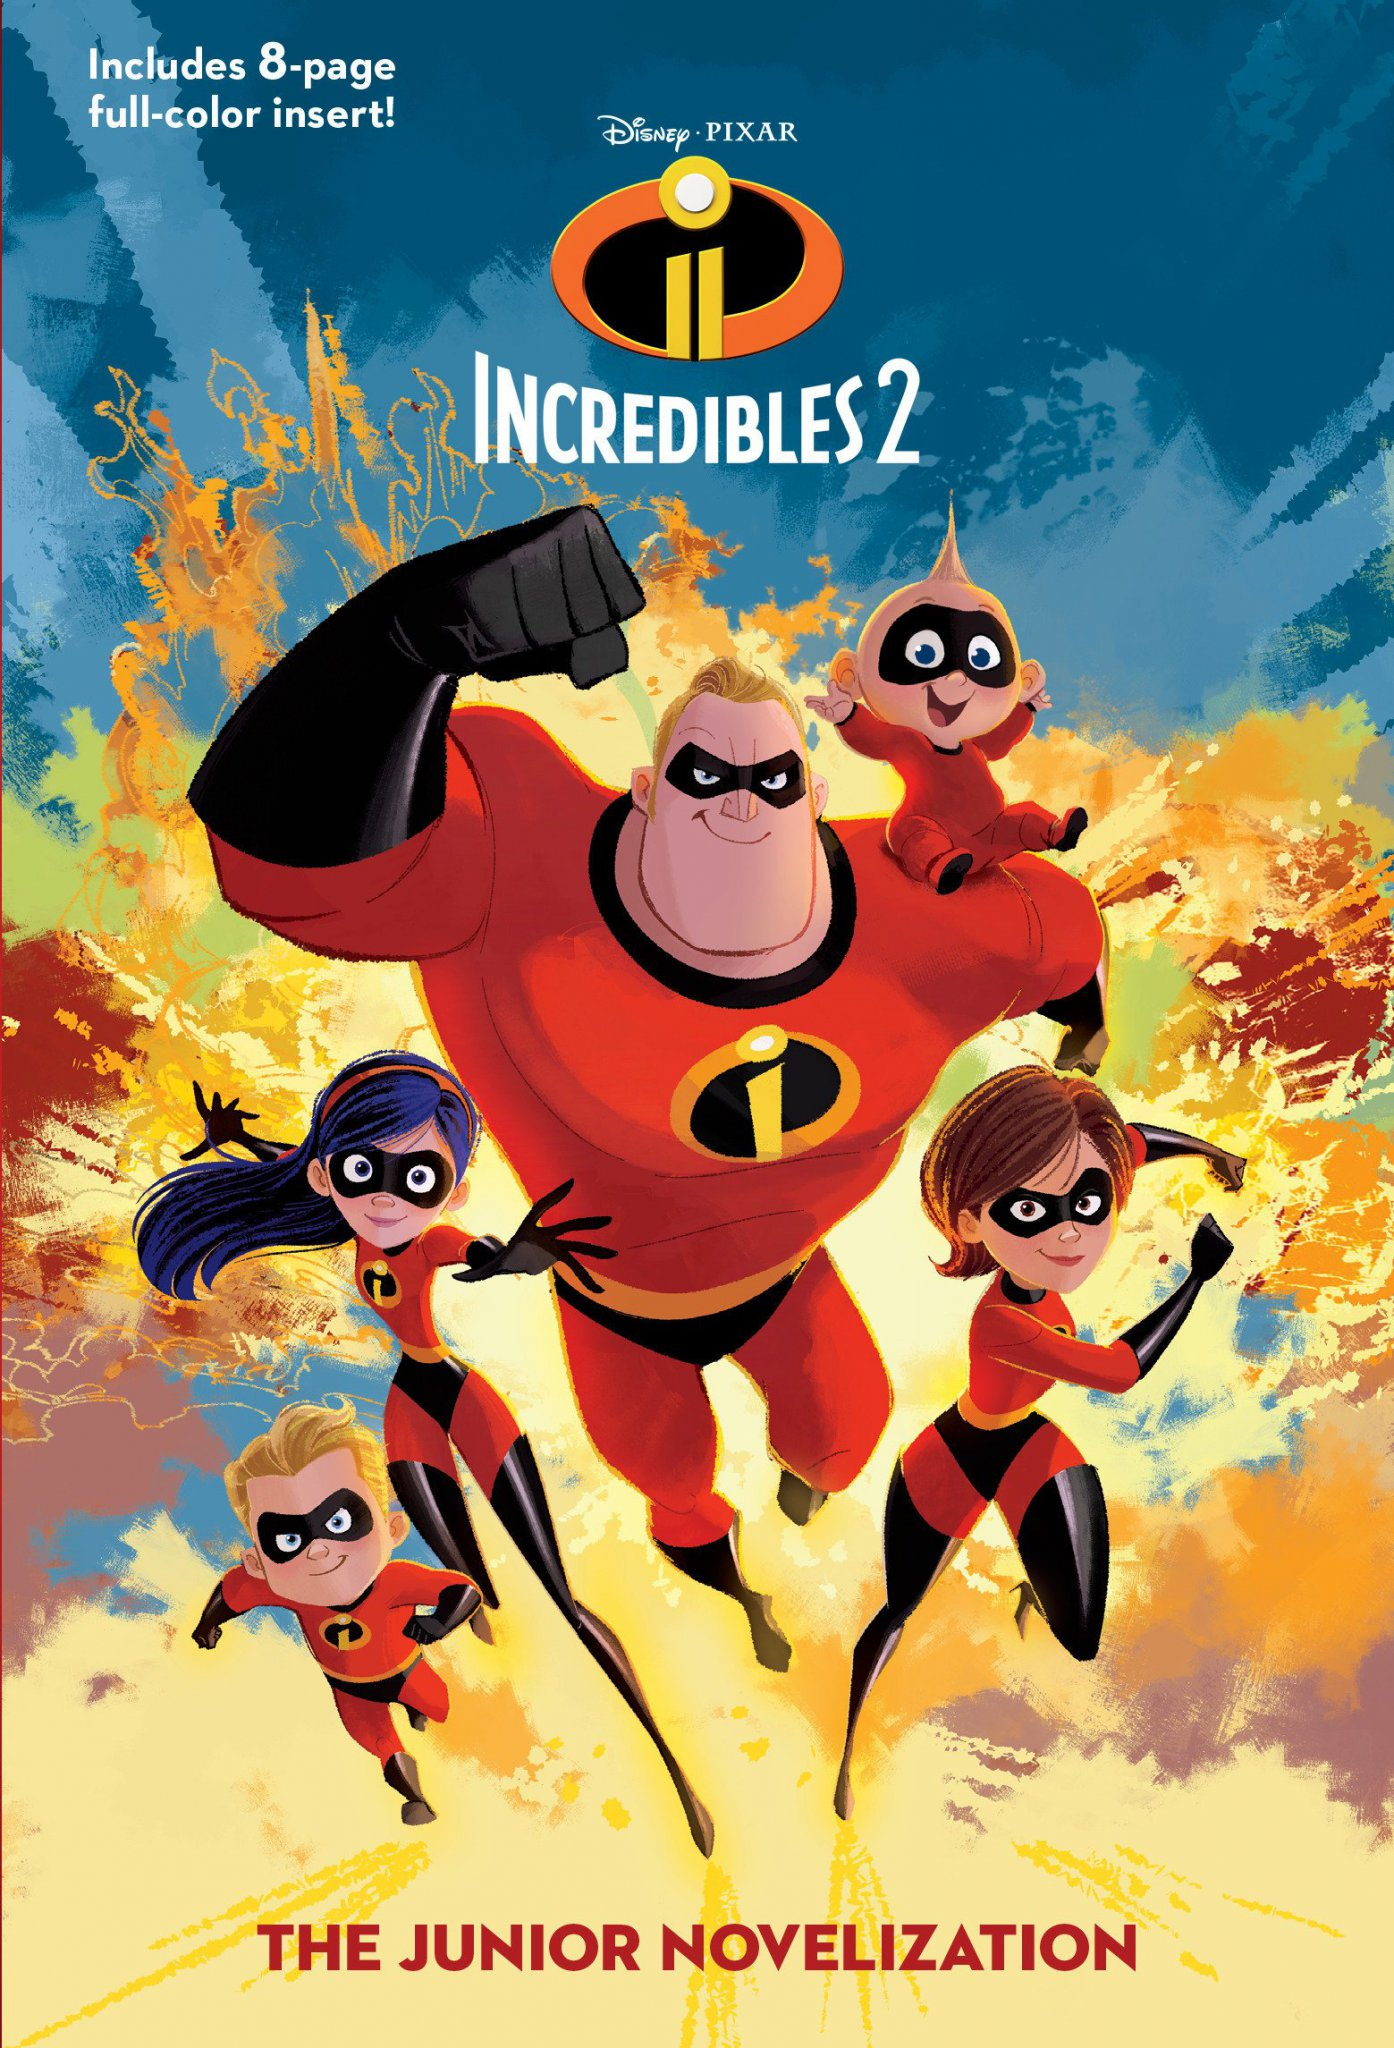 Incredibles 2 The Junior Novelization